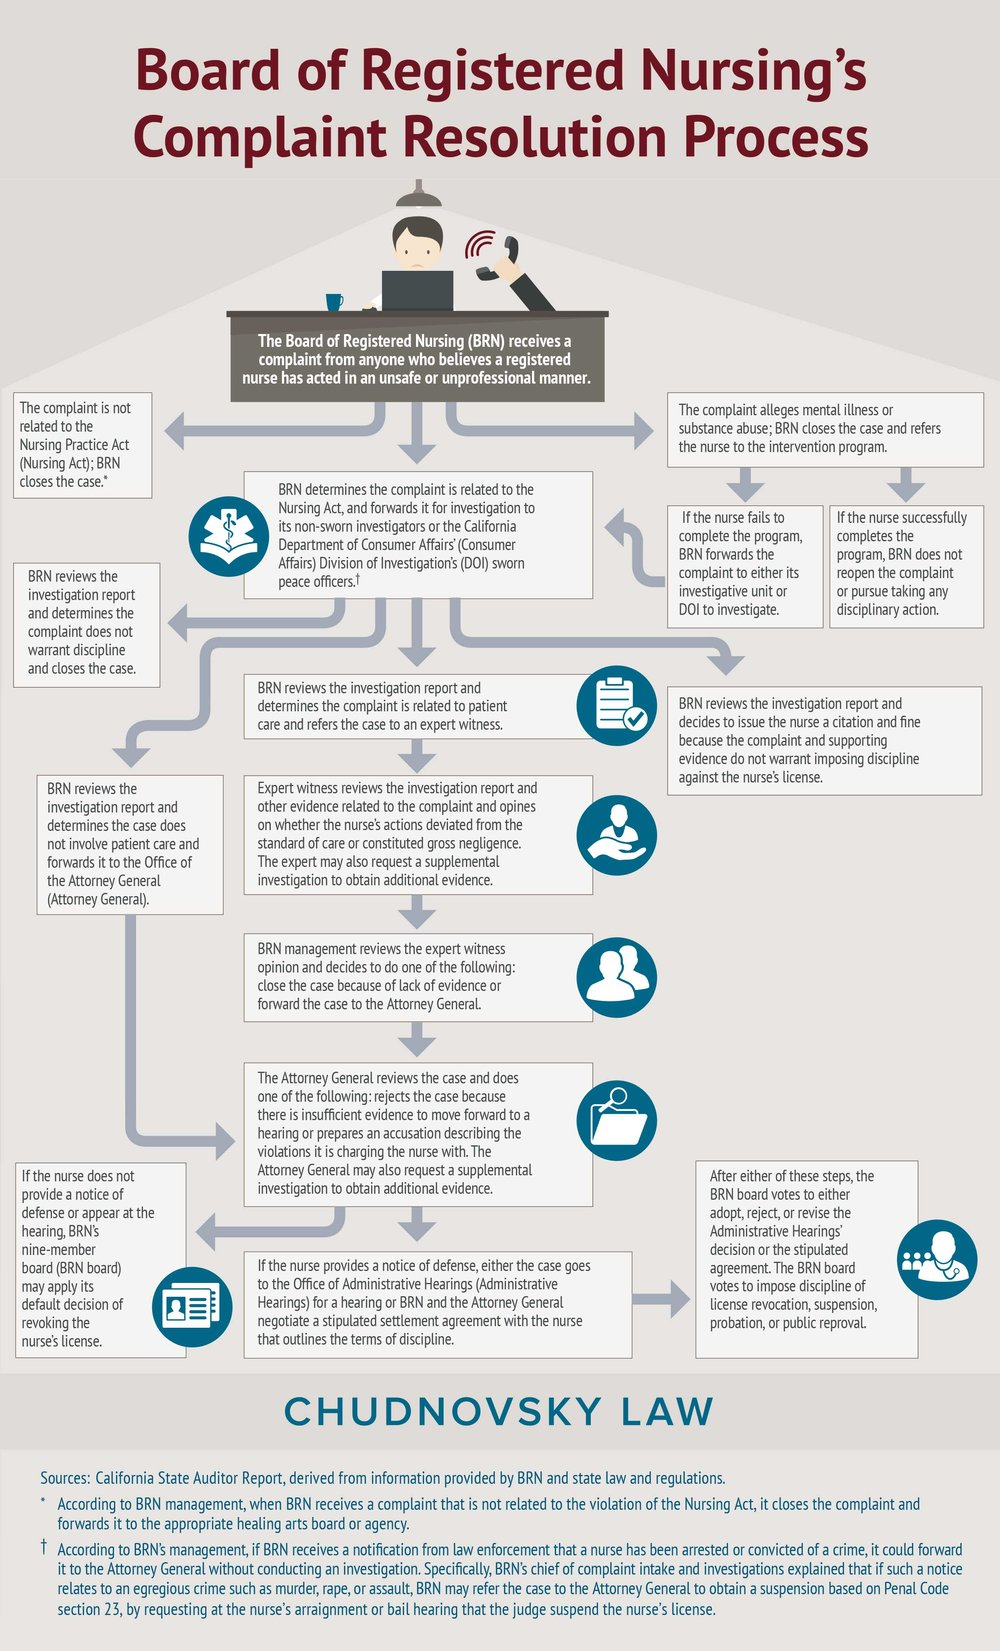 Infographic explaining the Board of Registered Nursing disciplinary complaint resolution process and procedures. Source: California Board of Registered Nursing and the California State Auditor Report.